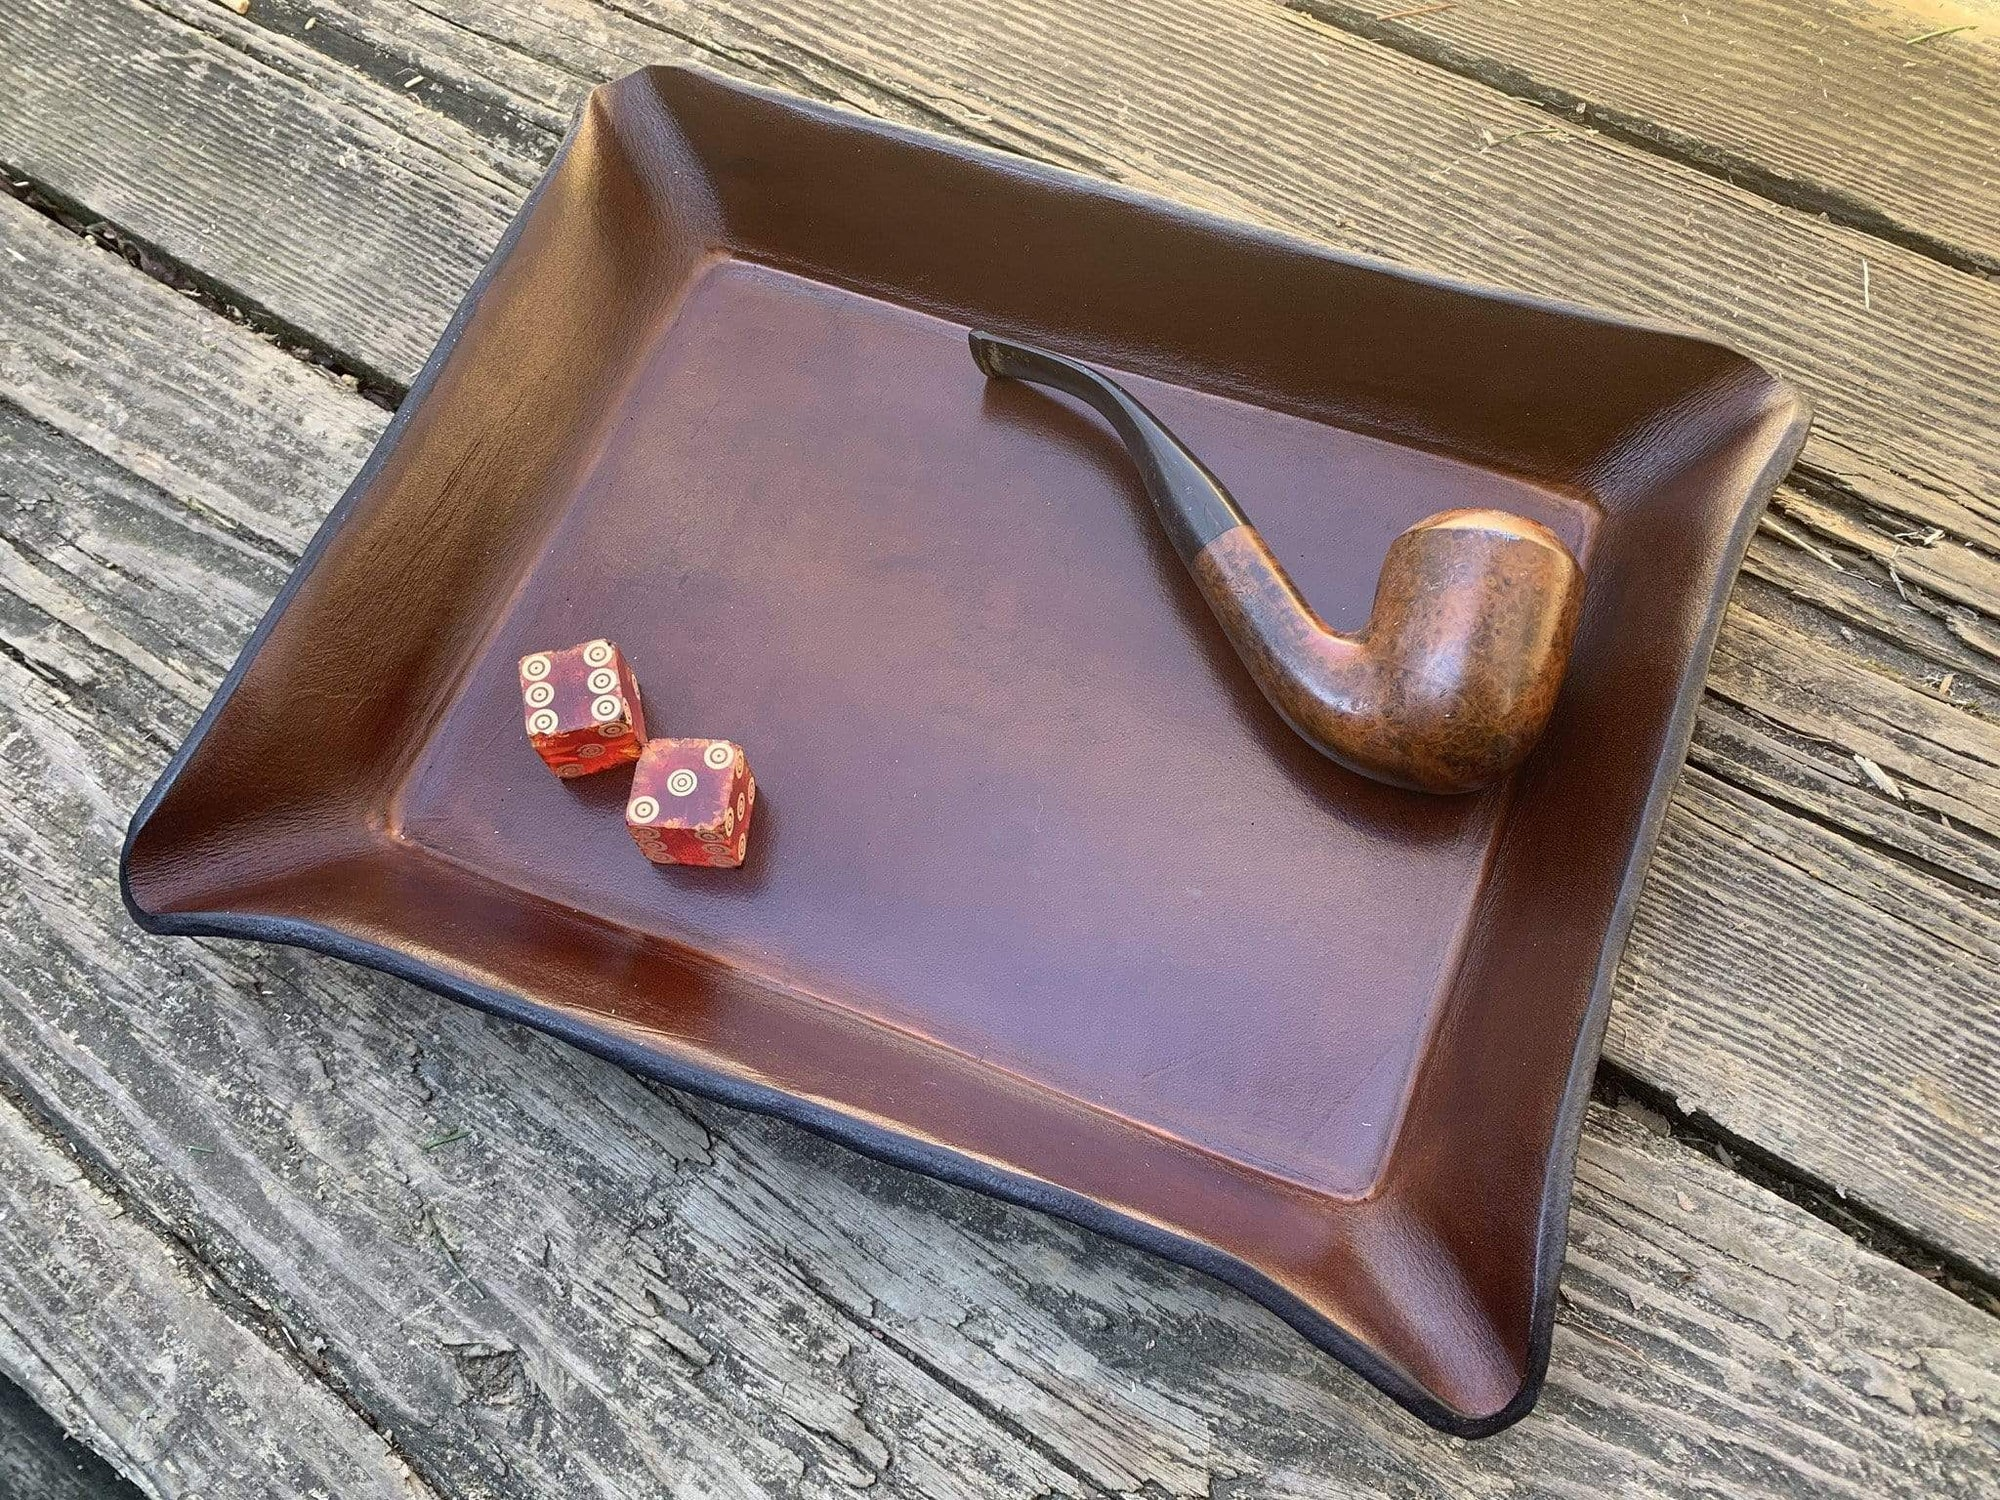 Leather valet tray for pipe display.